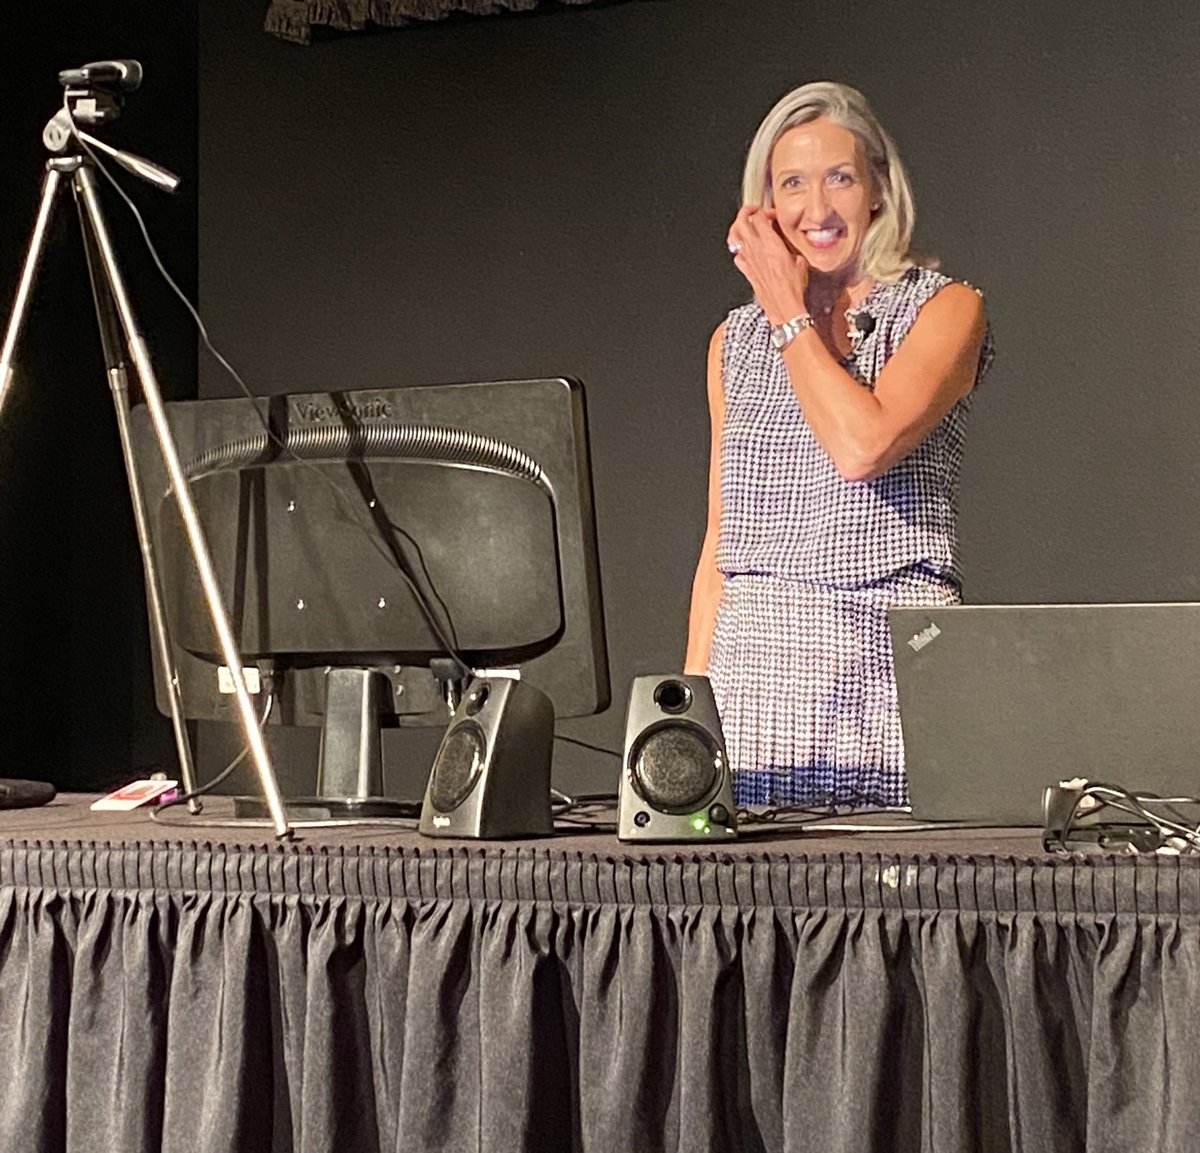 My new reality. Gave a live virtual keynote today from a stage at a local theater with no audience. Grateful for the work but I sure miss seeing the faces! #virtualkeynote #speakerslife #EmotionalIntelligence #EQ #Leadership #conference https://t.co/zthE3sbAkz